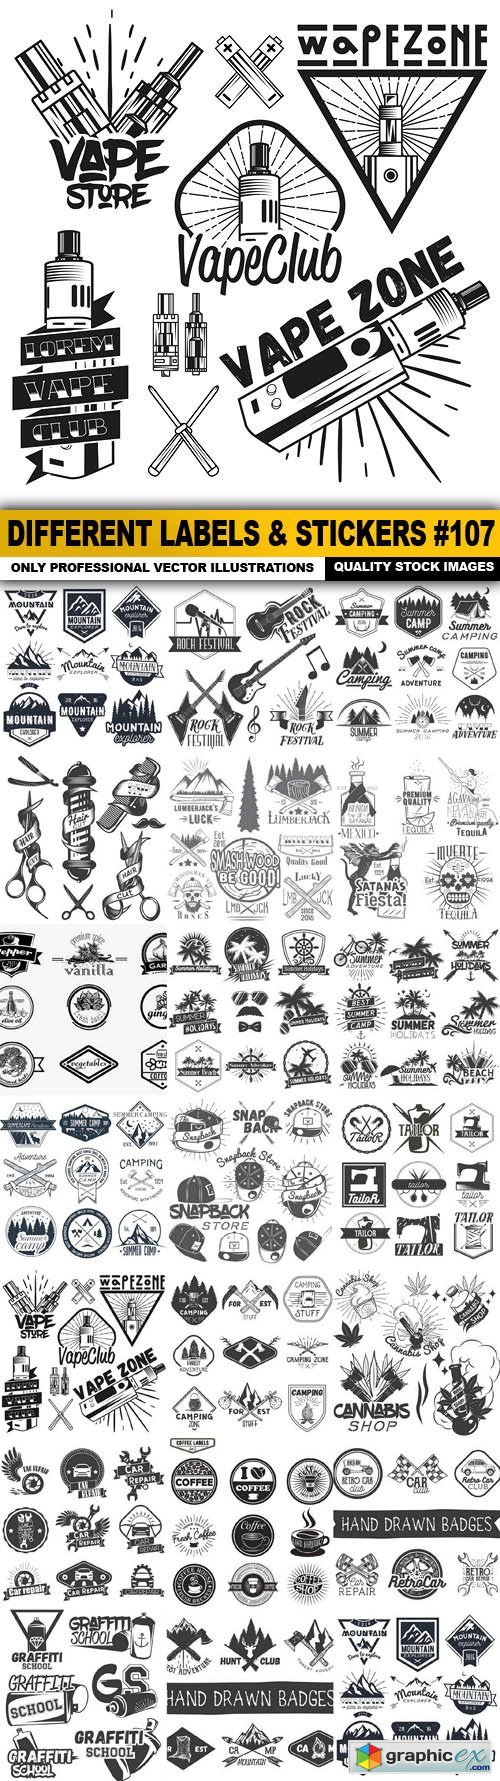 Different Labels & Stickers #107 - 20 Vector